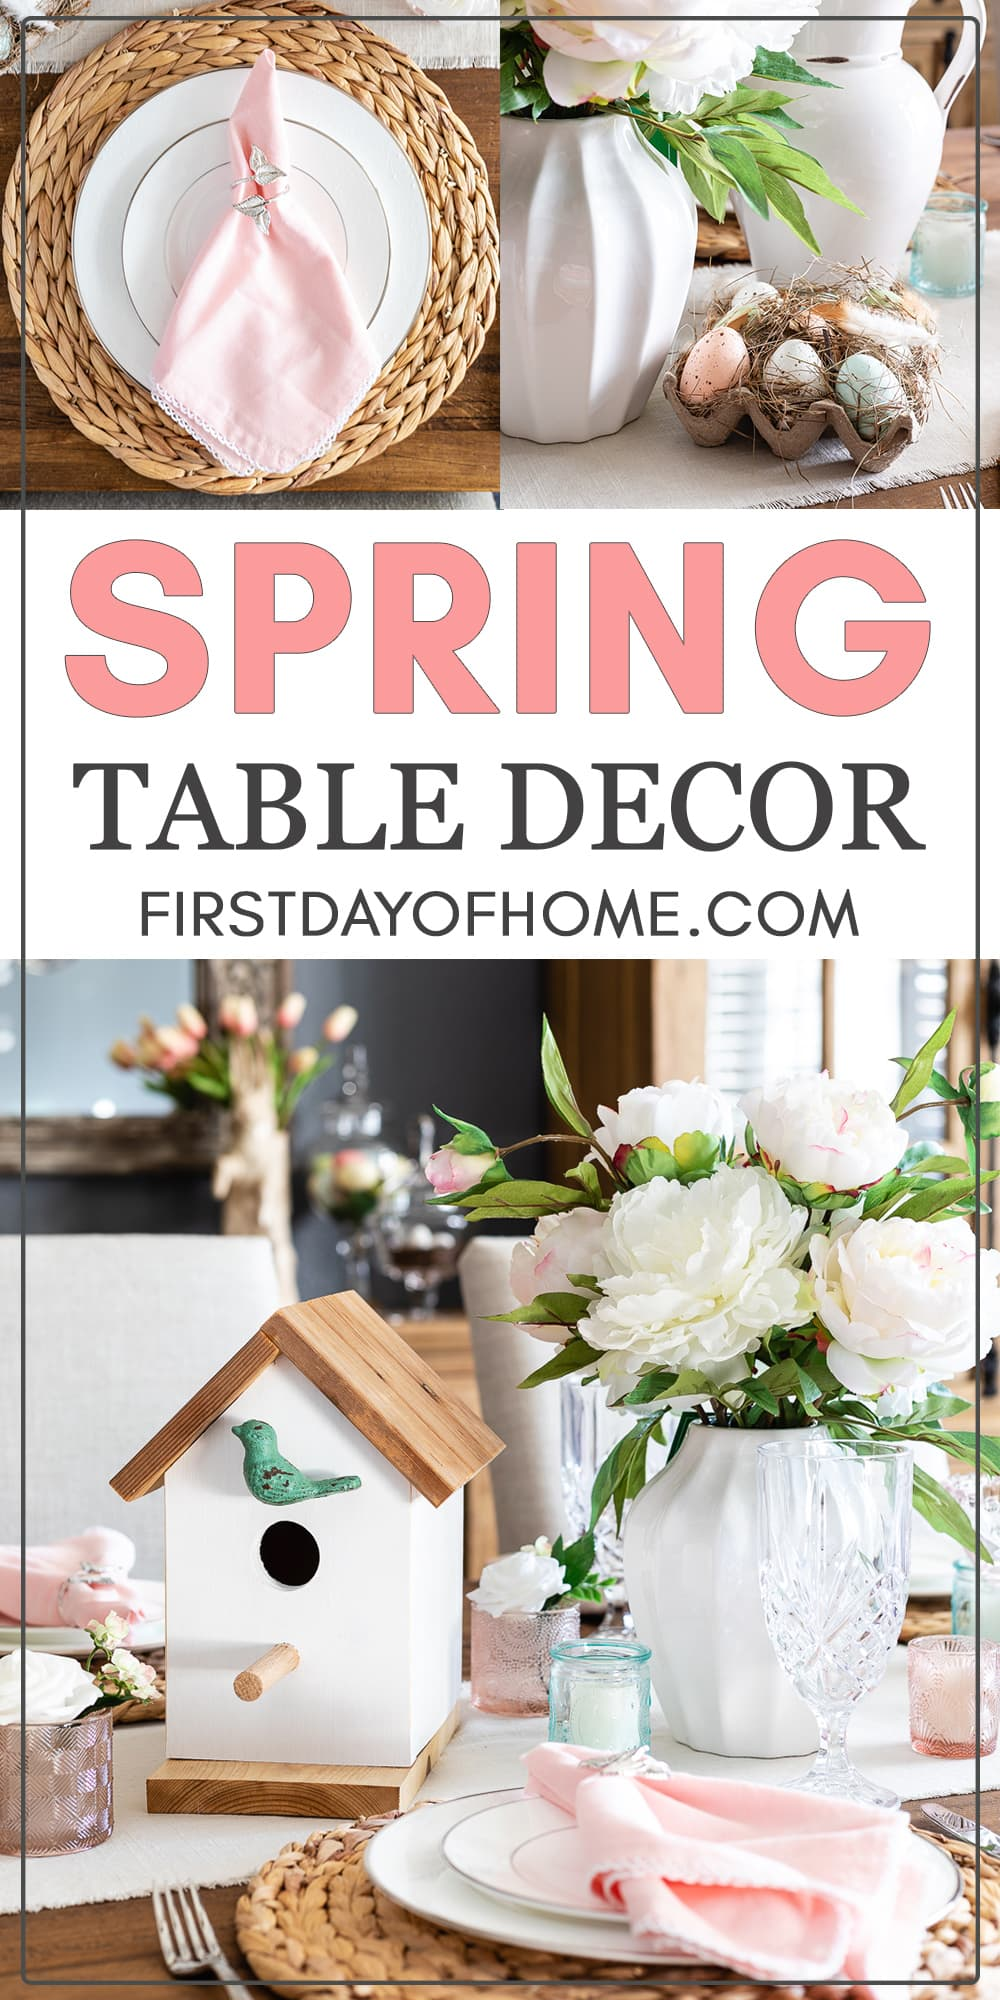 Spring table decorations with a birdhouse, woven charger plates, floral centerpieces and a pastel color theme